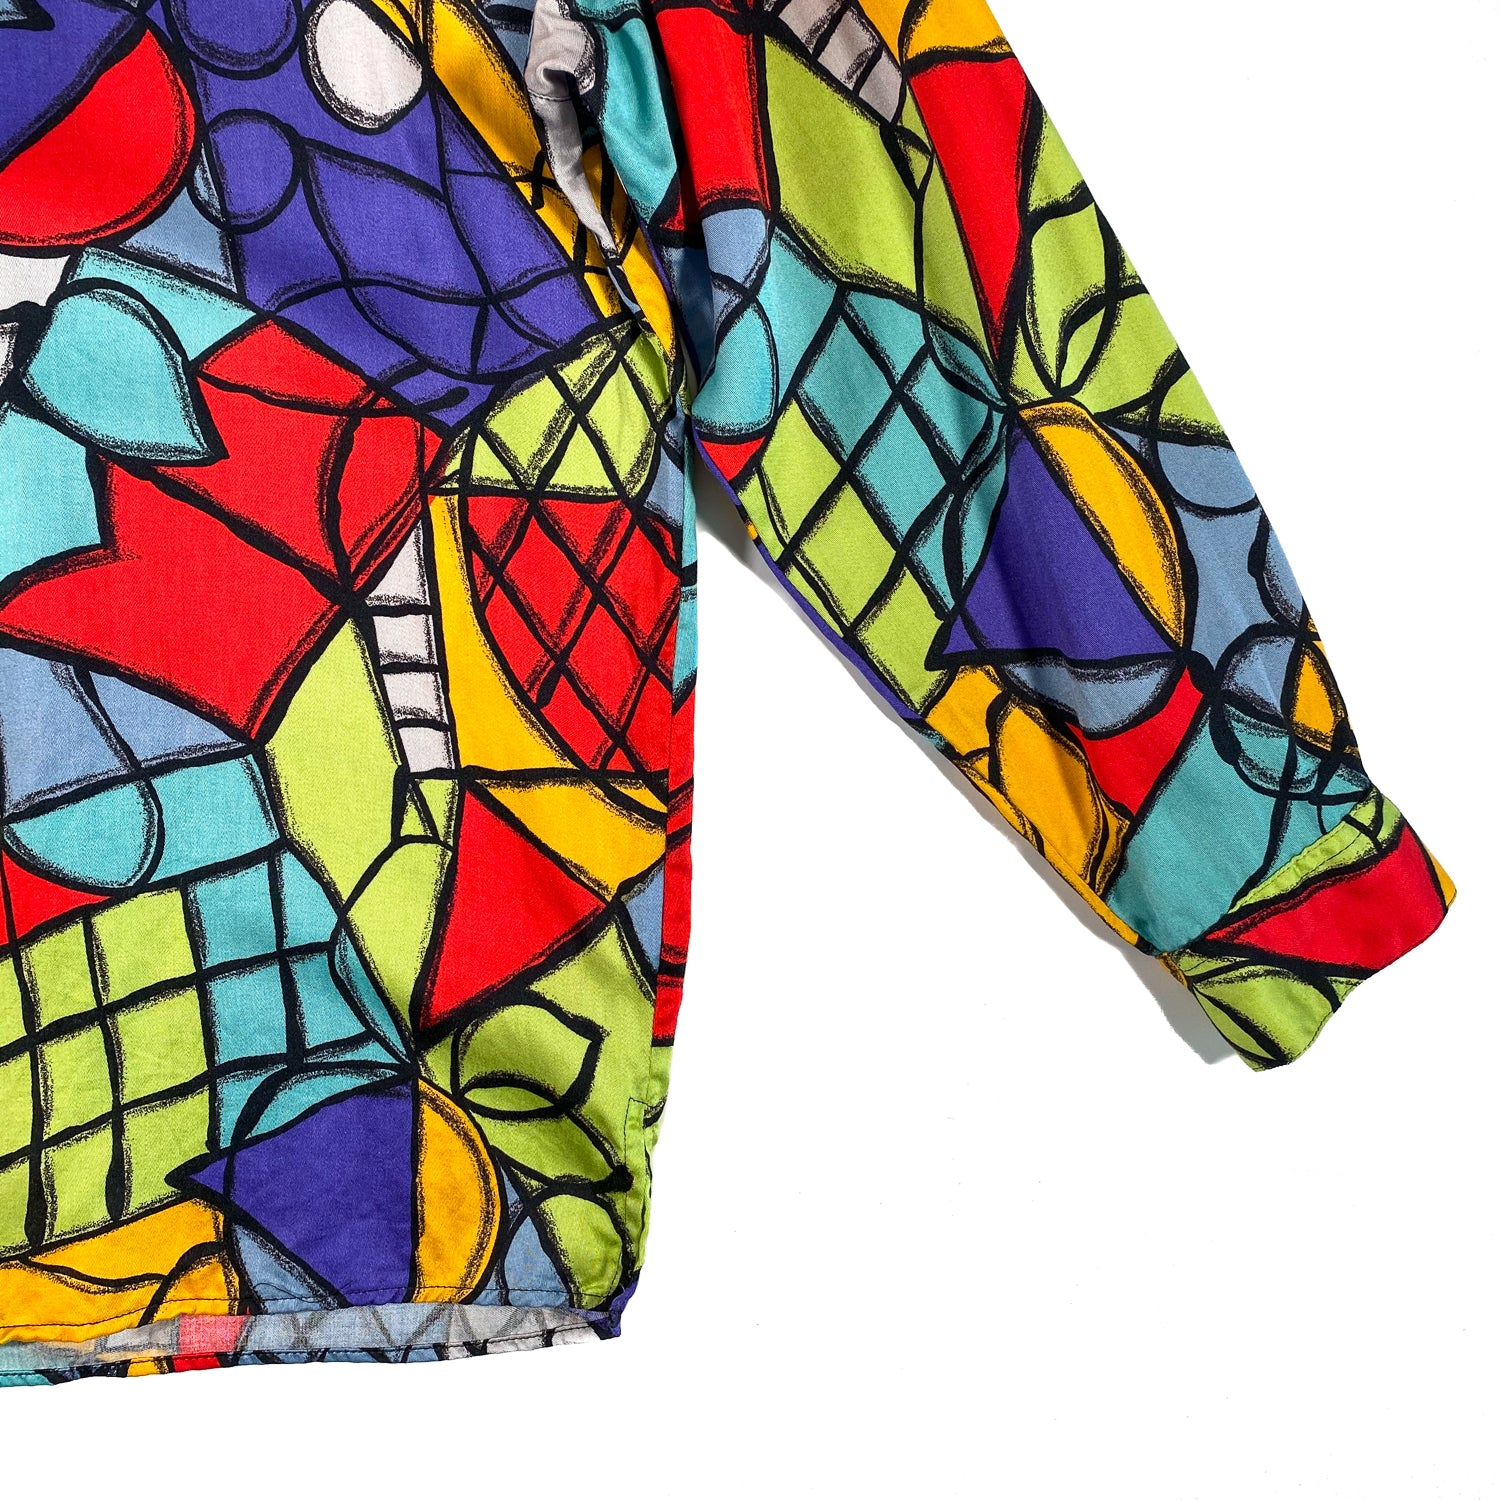 Second Room Vintage Clothing. Vintage 90s Esprit long sleeve blouse, with abstract print in orange, lime green, red, purple, grey and black. Top button does up with a loop, and the buttons down the front are hidden behind a placket. Free Shipping on all orders within North America.